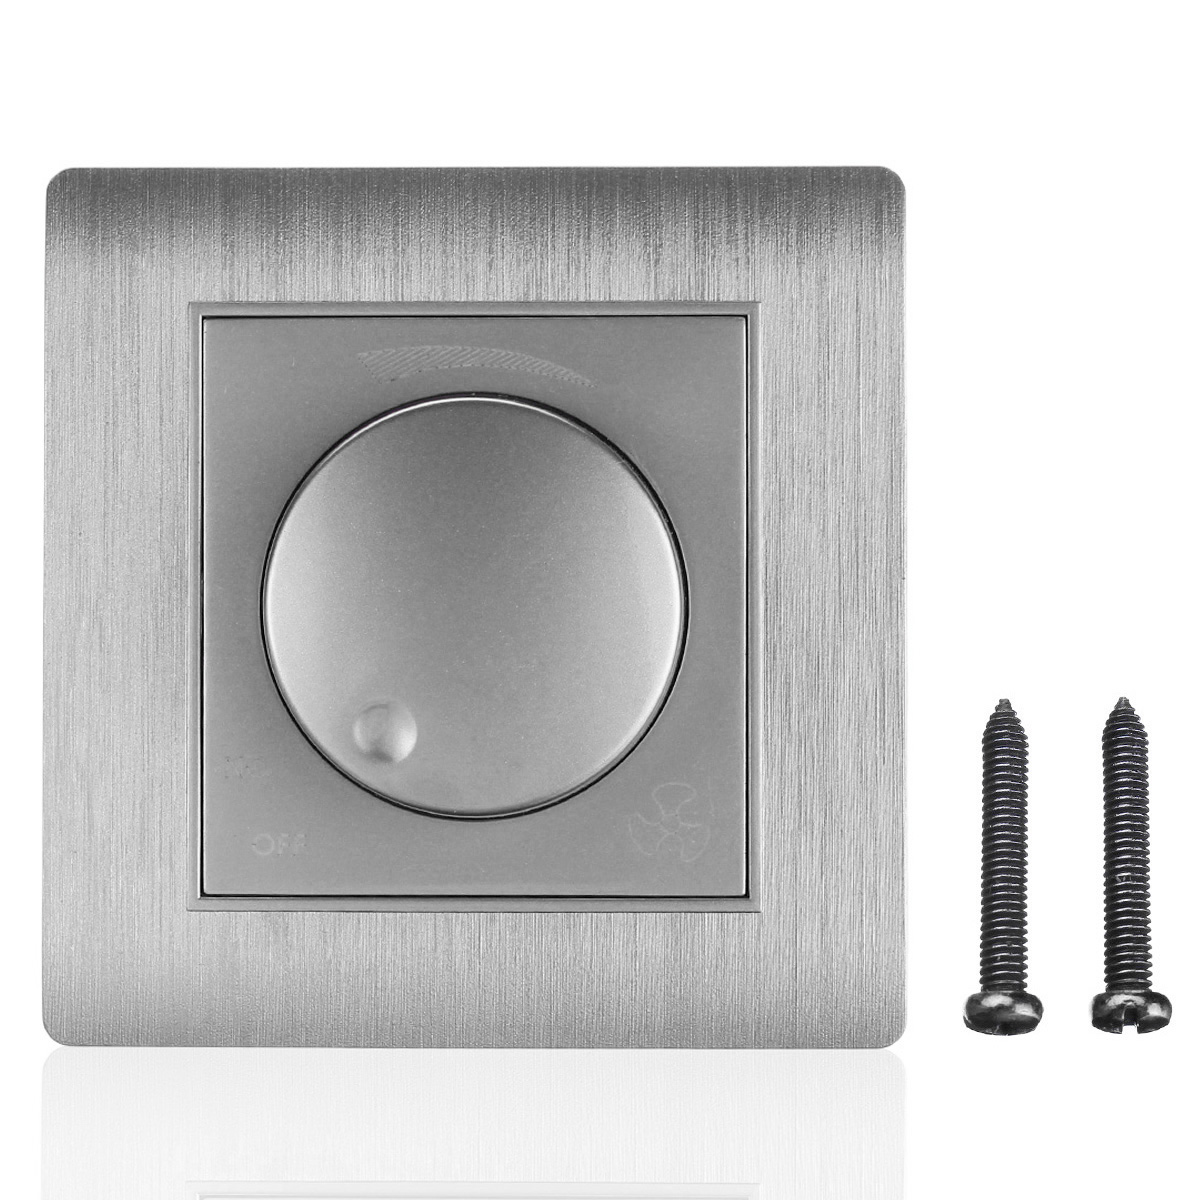 AC 110~250V 86 Model Wall Switch Light Round Panel Dimmer Switch ...